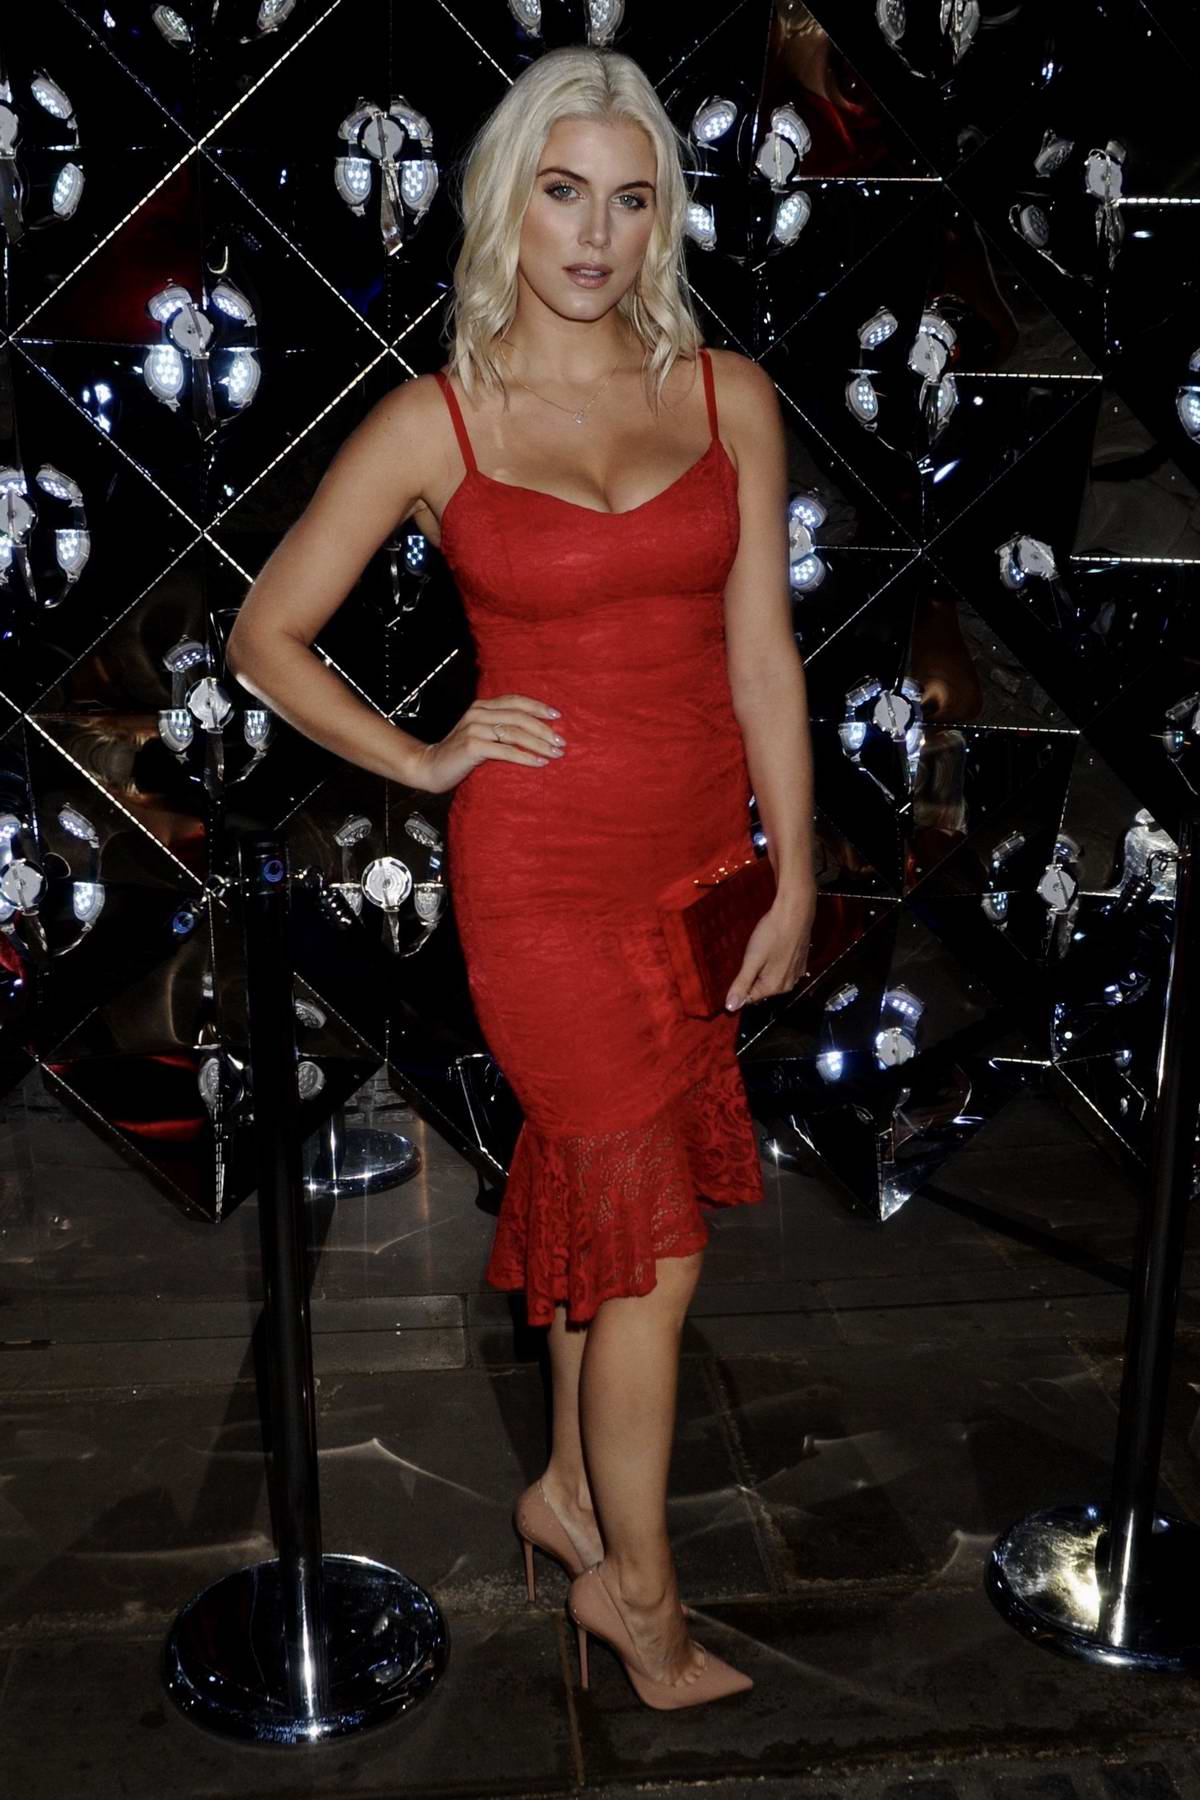 Ashley James at the Lipsy Winter Wonderland party in London